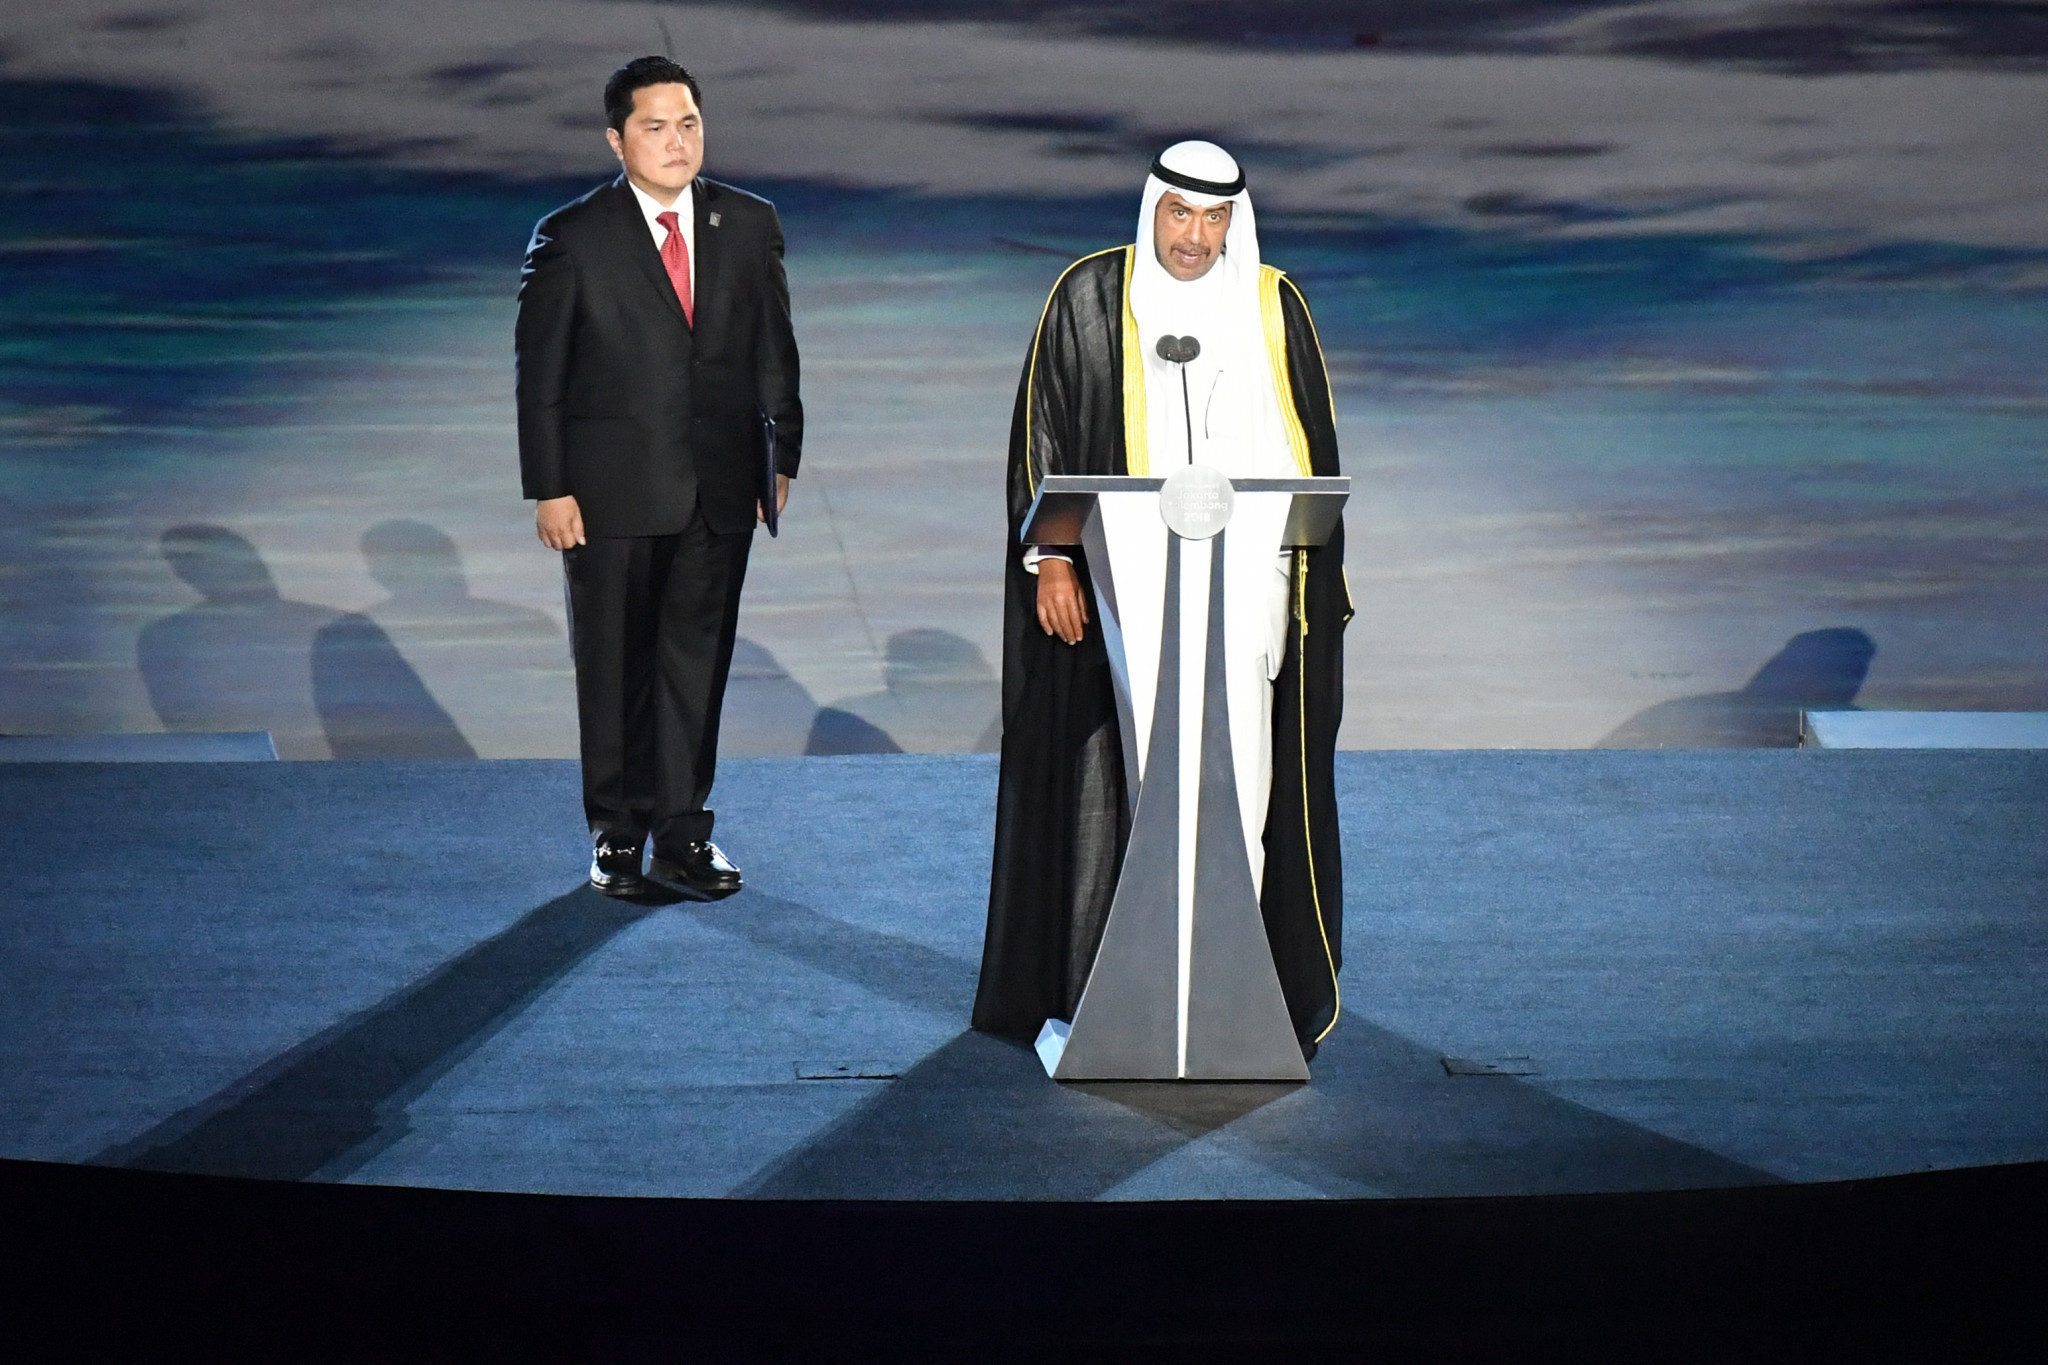 Following a short speech by the Olympic Council of Asia President, Shiekh Ahmed Al-Fahad Al-Ahmed Al-Sabah, the Games were declared officially open ©Getty Images